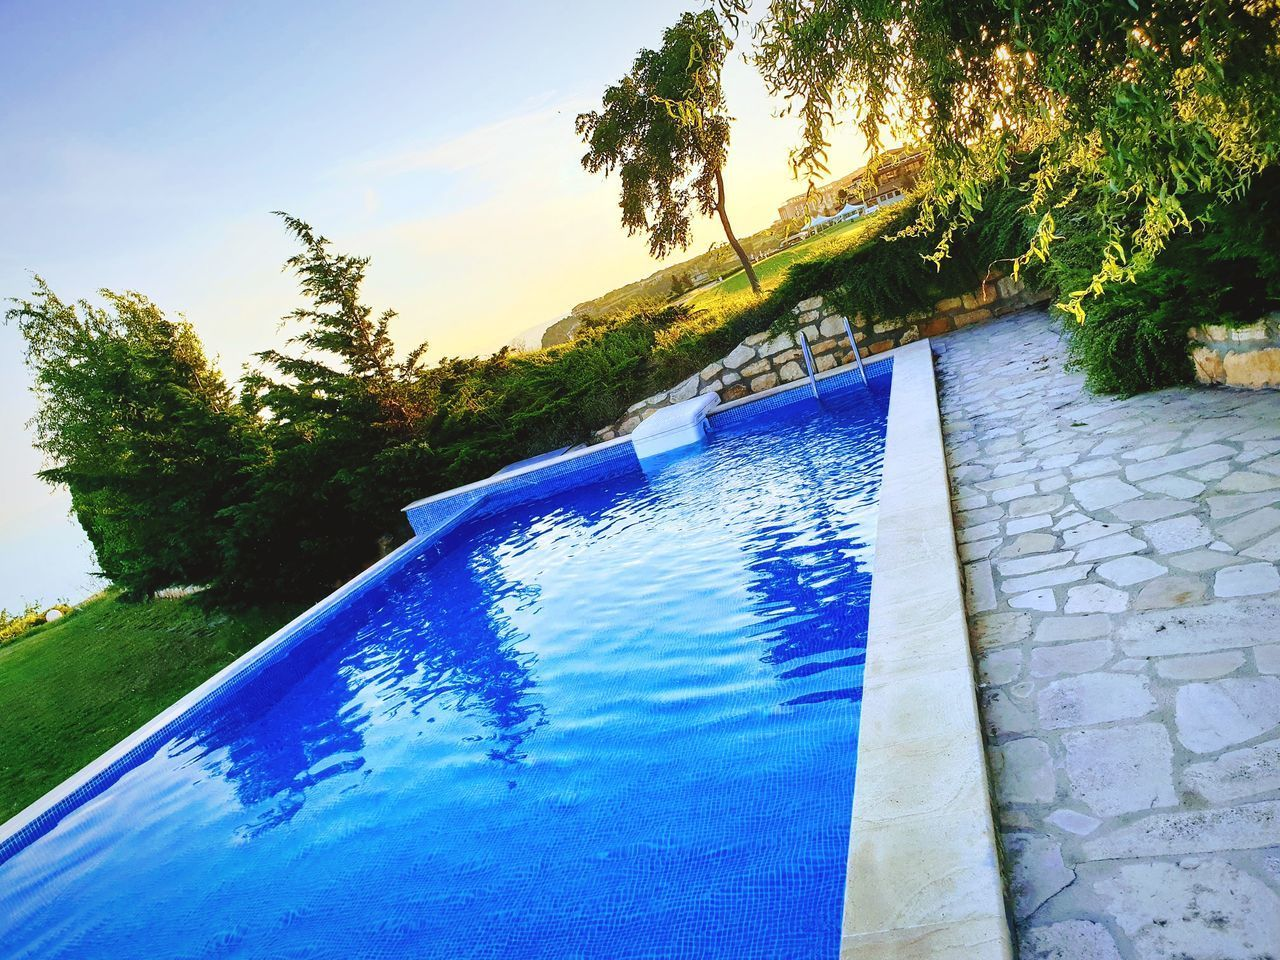 tree, swimming pool, blue, plant, water, pool, nature, sky, no people, day, outdoors, reflection, growth, poolside, cloud - sky, tranquility, architecture, scenics - nature, sunlight, inflatable